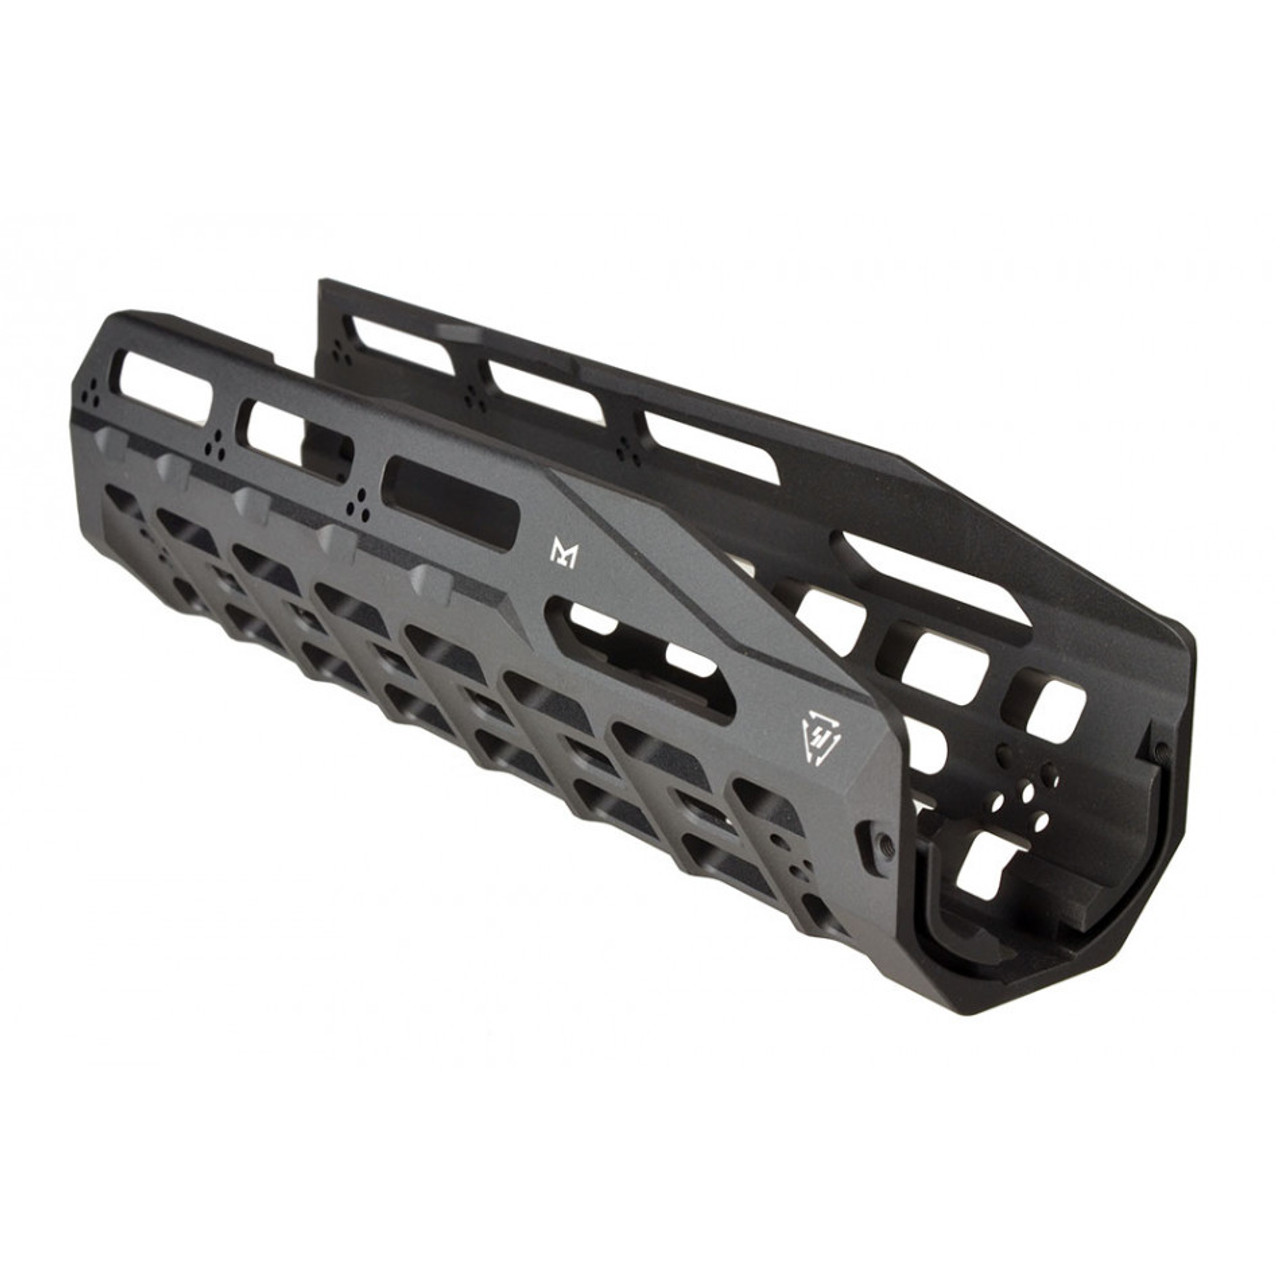 Strike Industries Hayl Rail MLOK Handguard for Benelli M4